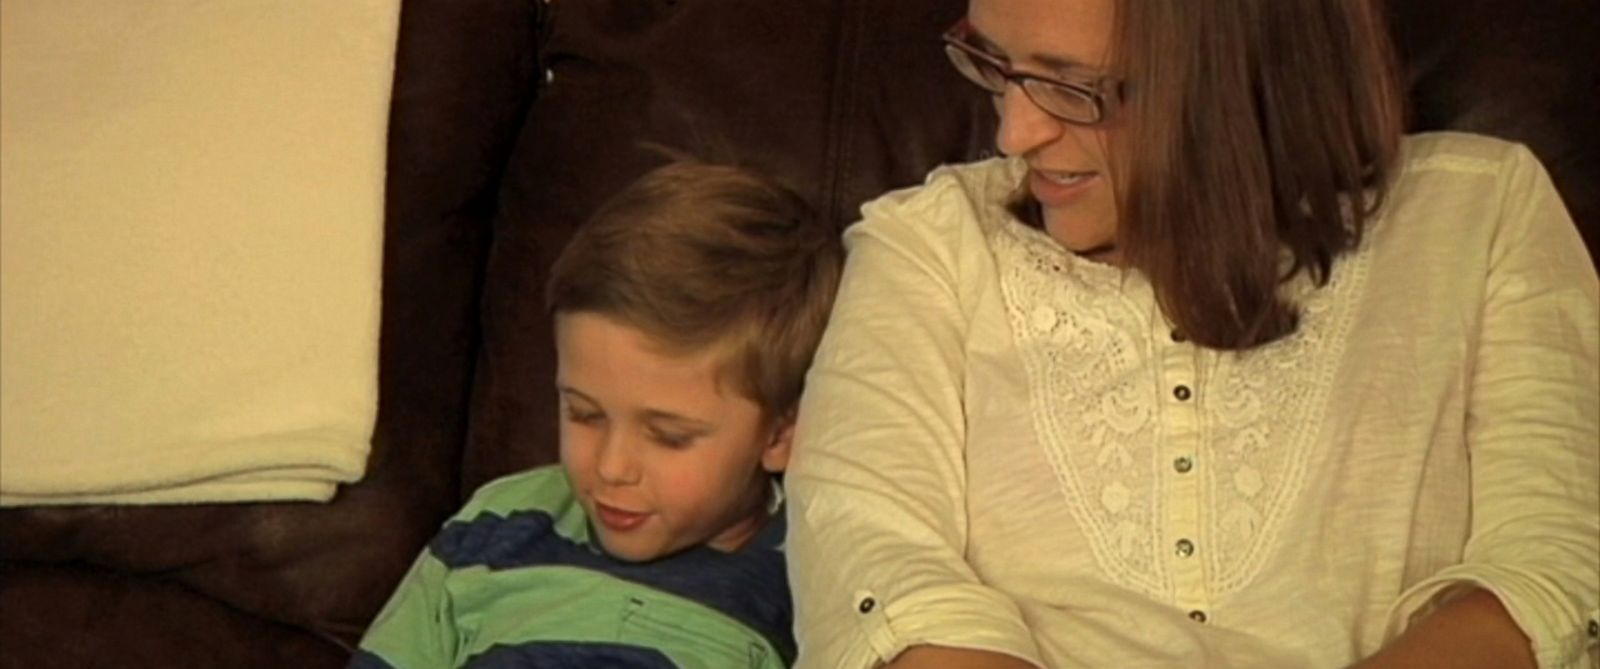 PHOTO: Kerri Evensen, a Wisconsin mother, was stunned to learn that she had an aneurysm after she offered to donate a portion of her liver to her son.